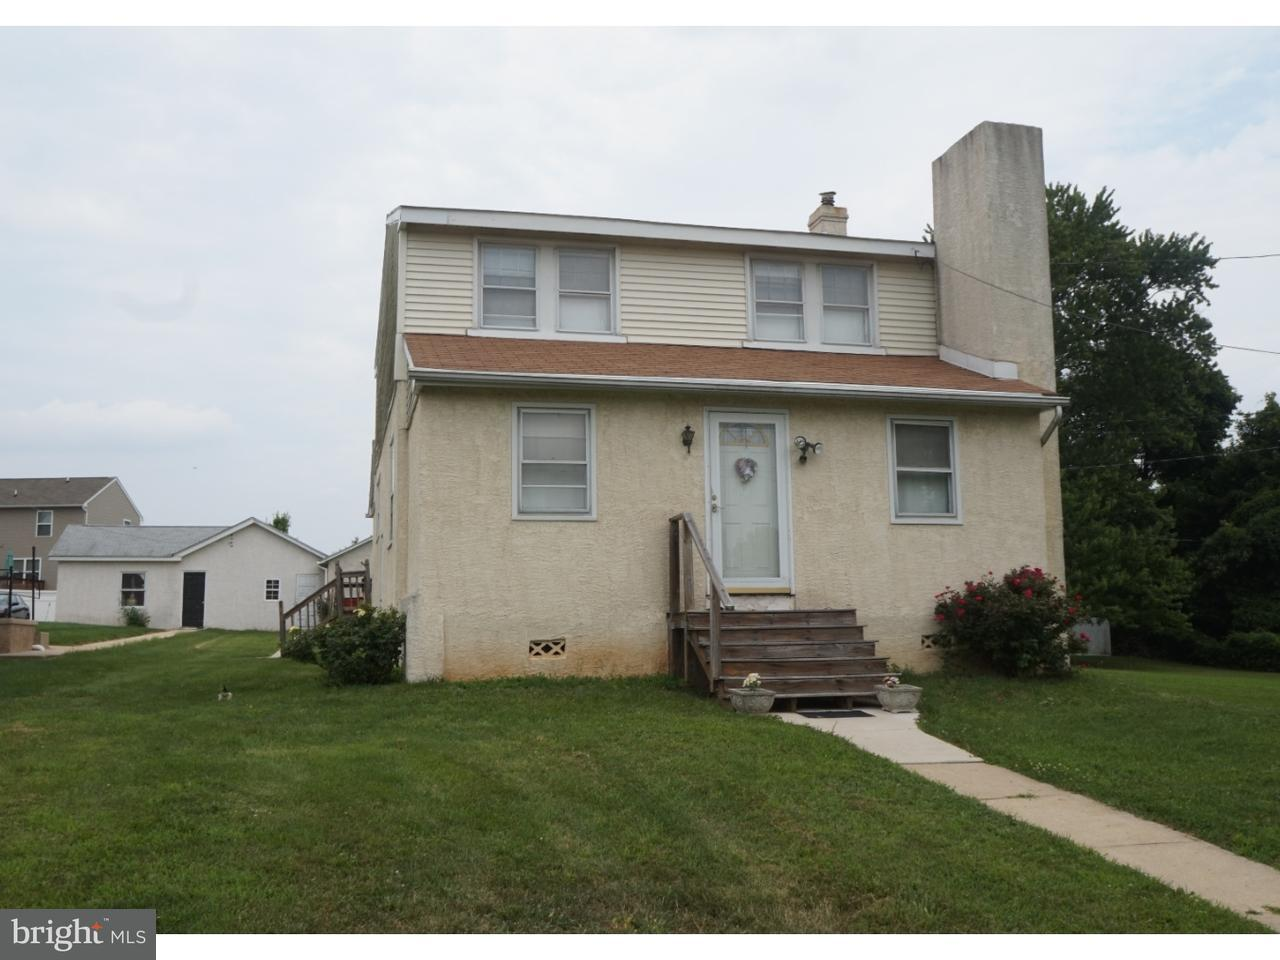 Single Family Home for Sale at 2963 W GERMANTOWN PIKE Worcester, Pennsylvania 19403 United States